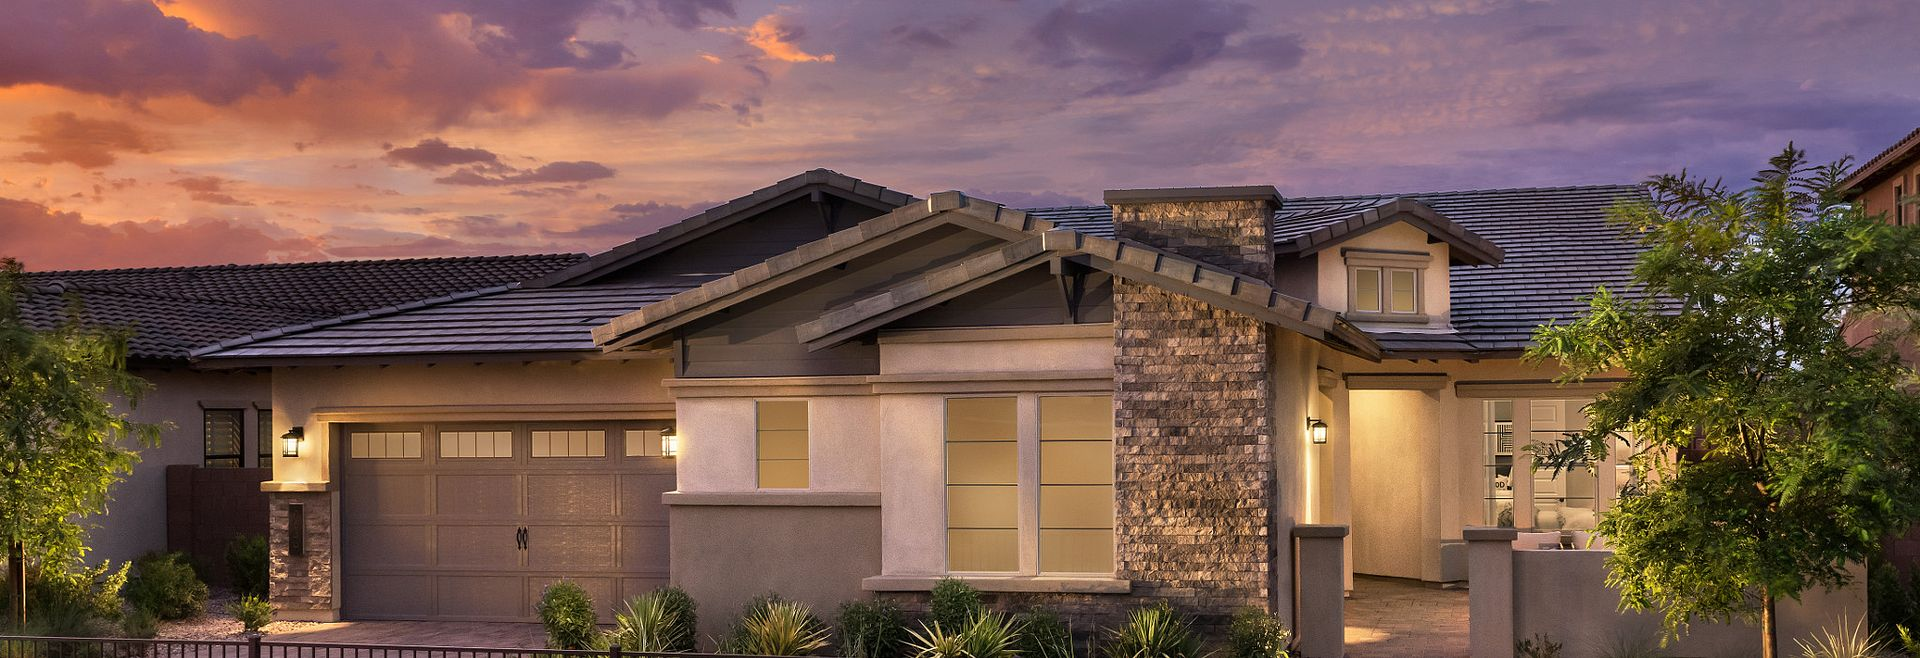 Evolve at Cantilena by Shea Homes in Peoria, AZ